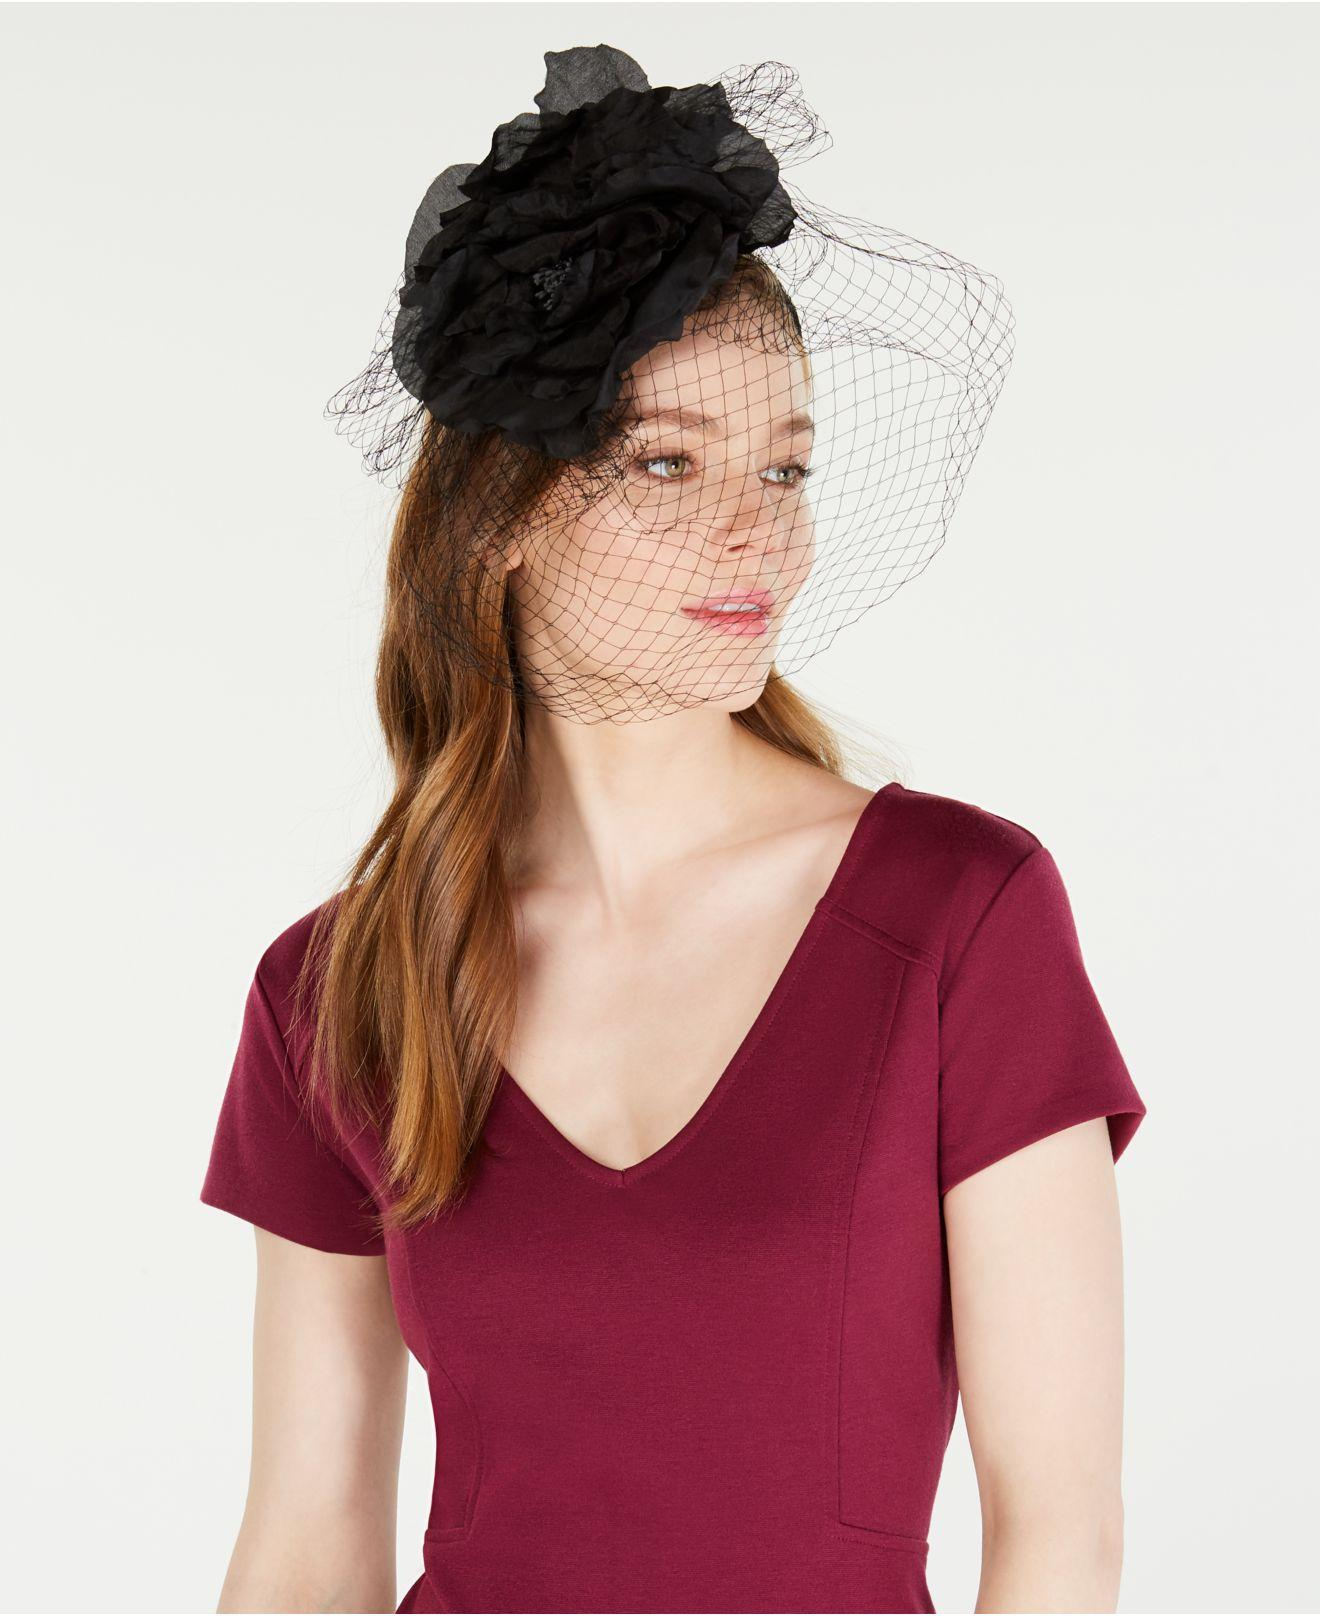 0248b9bf76d0d Lyst - August Accessories Flower Netting Fascinator in Black